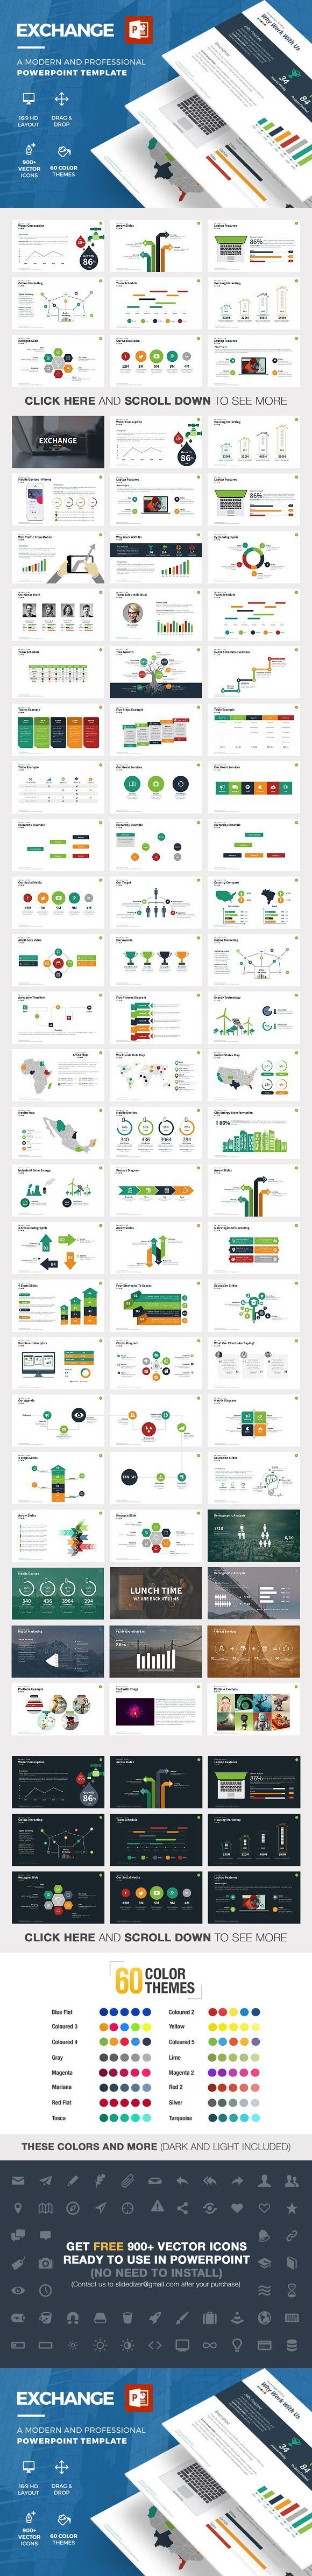 Exchange Powerpoint Template Business Infographic 15 00